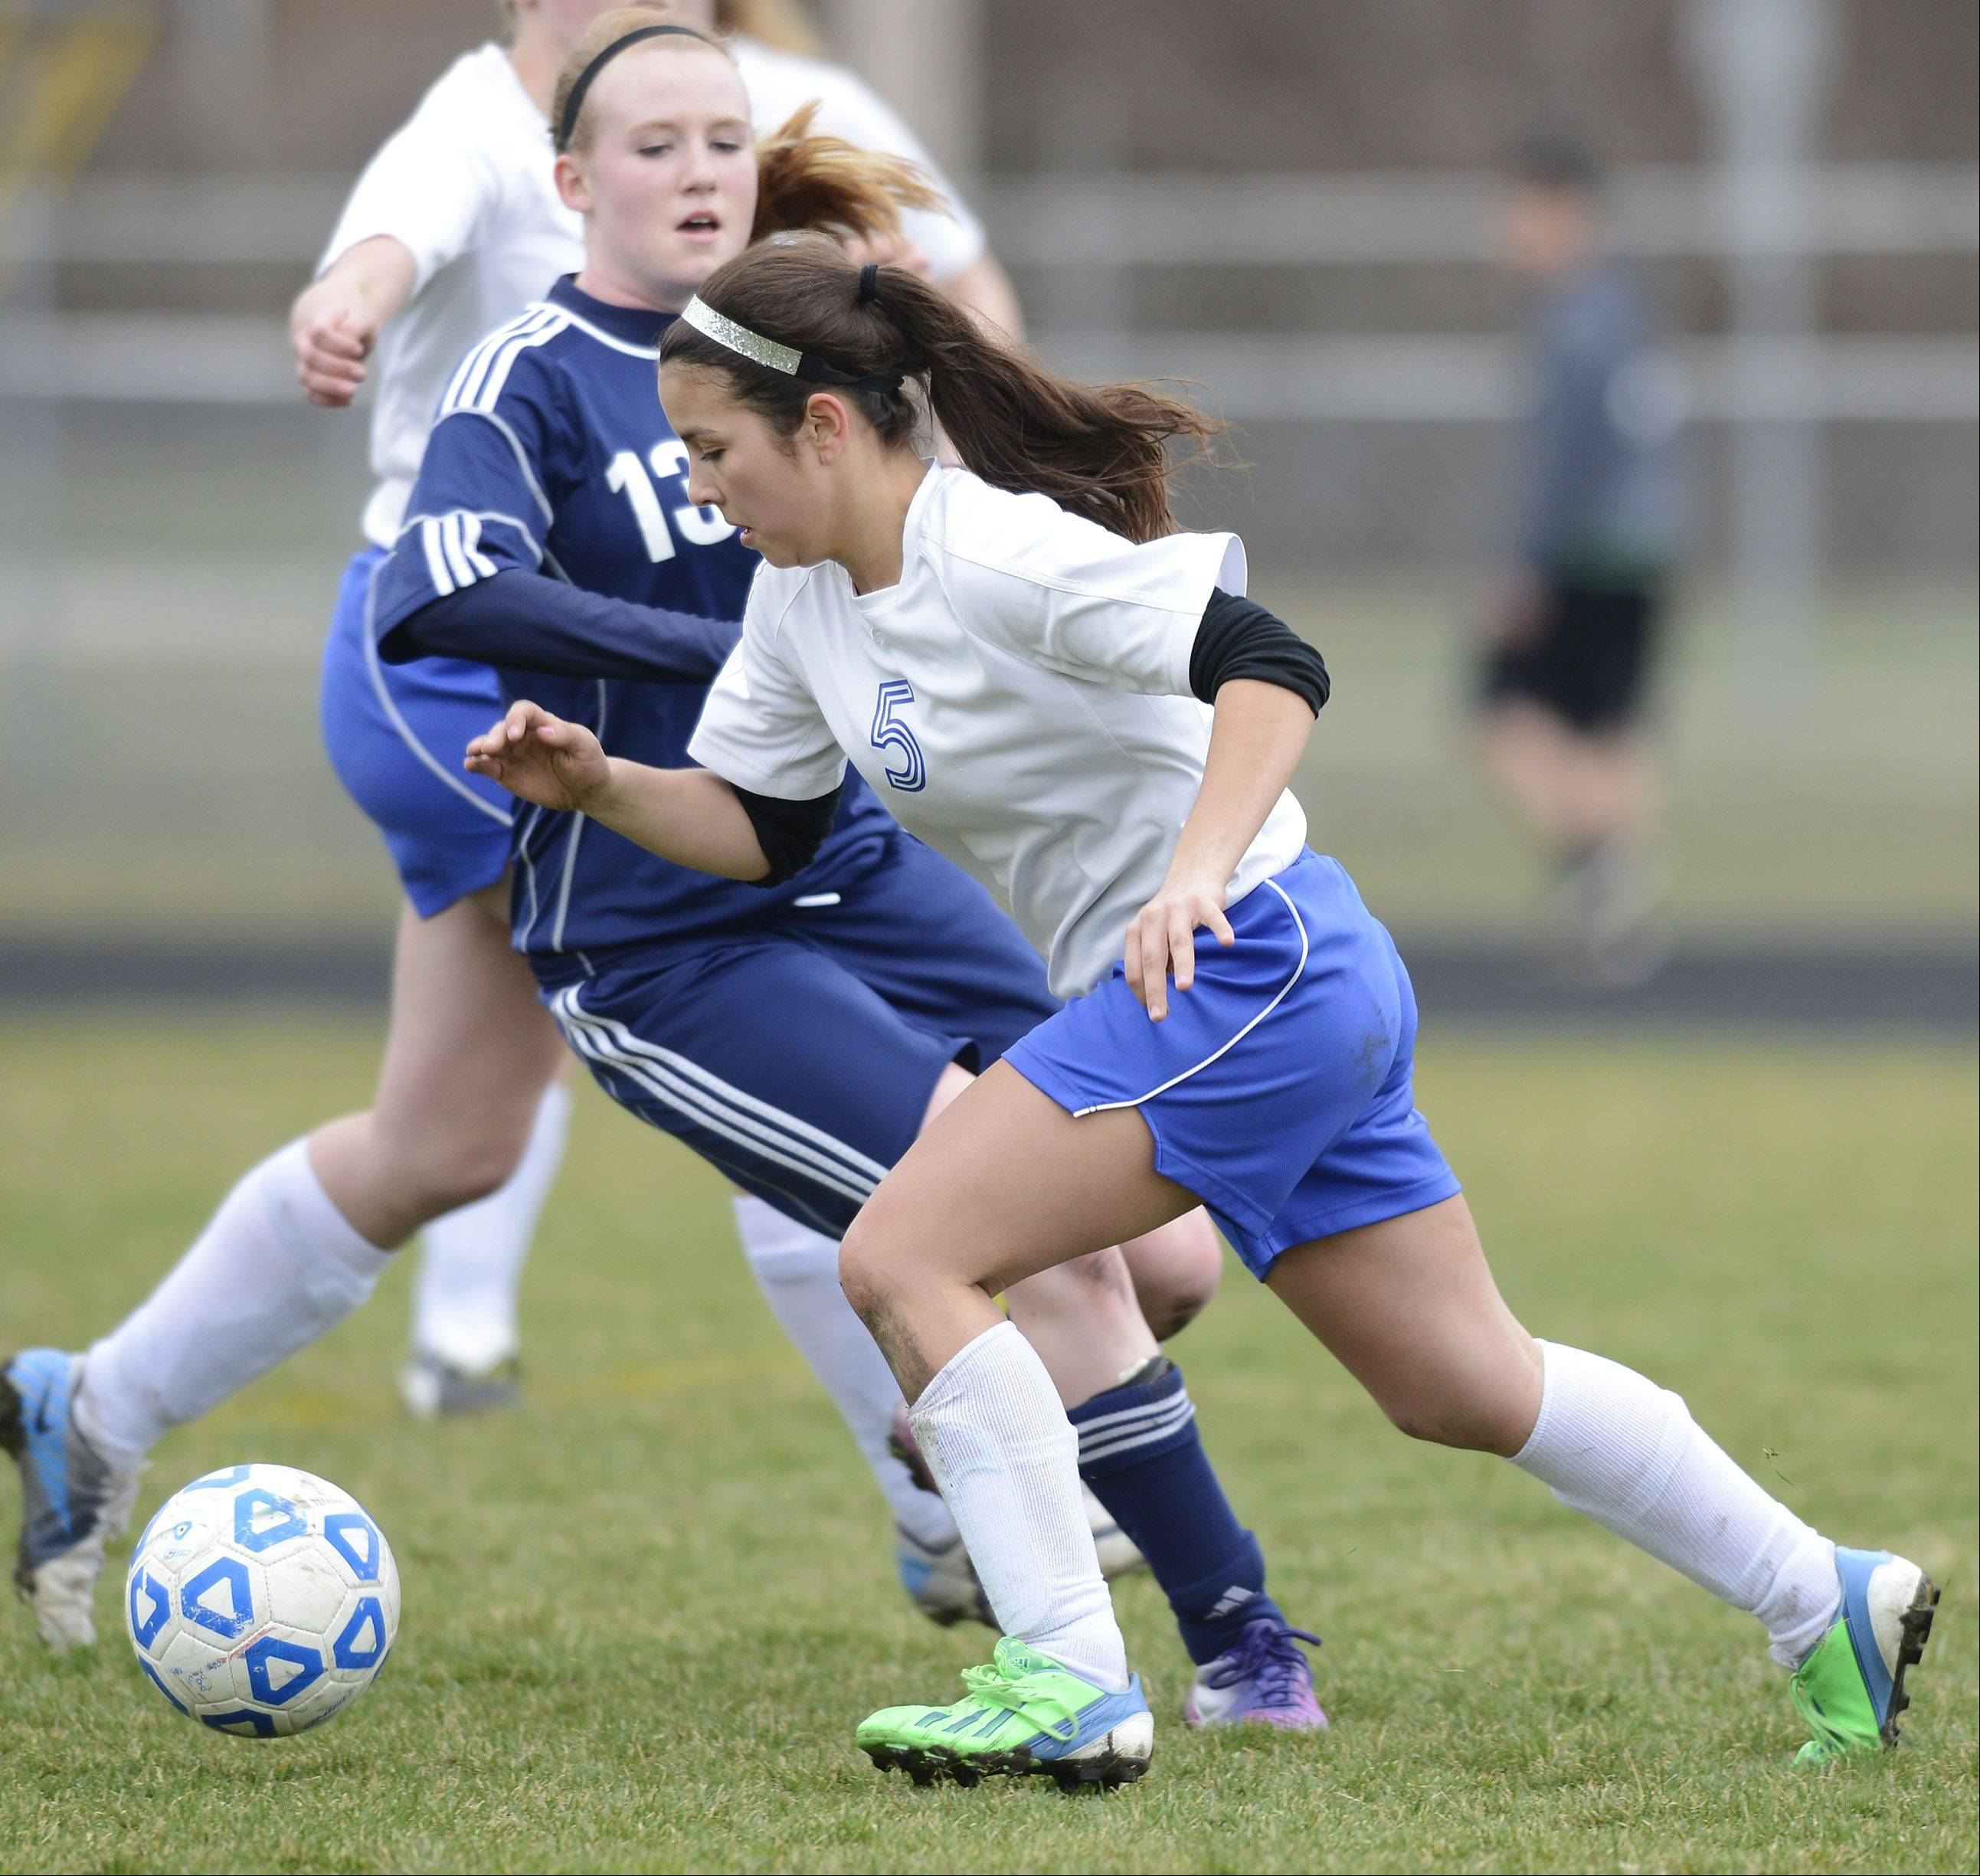 Christian Liberty�s Maddie Bennett, front, tries to make a move past Harvest Christian�s Morgan Lockwood during Tuesday�s game in Arlington Heights.